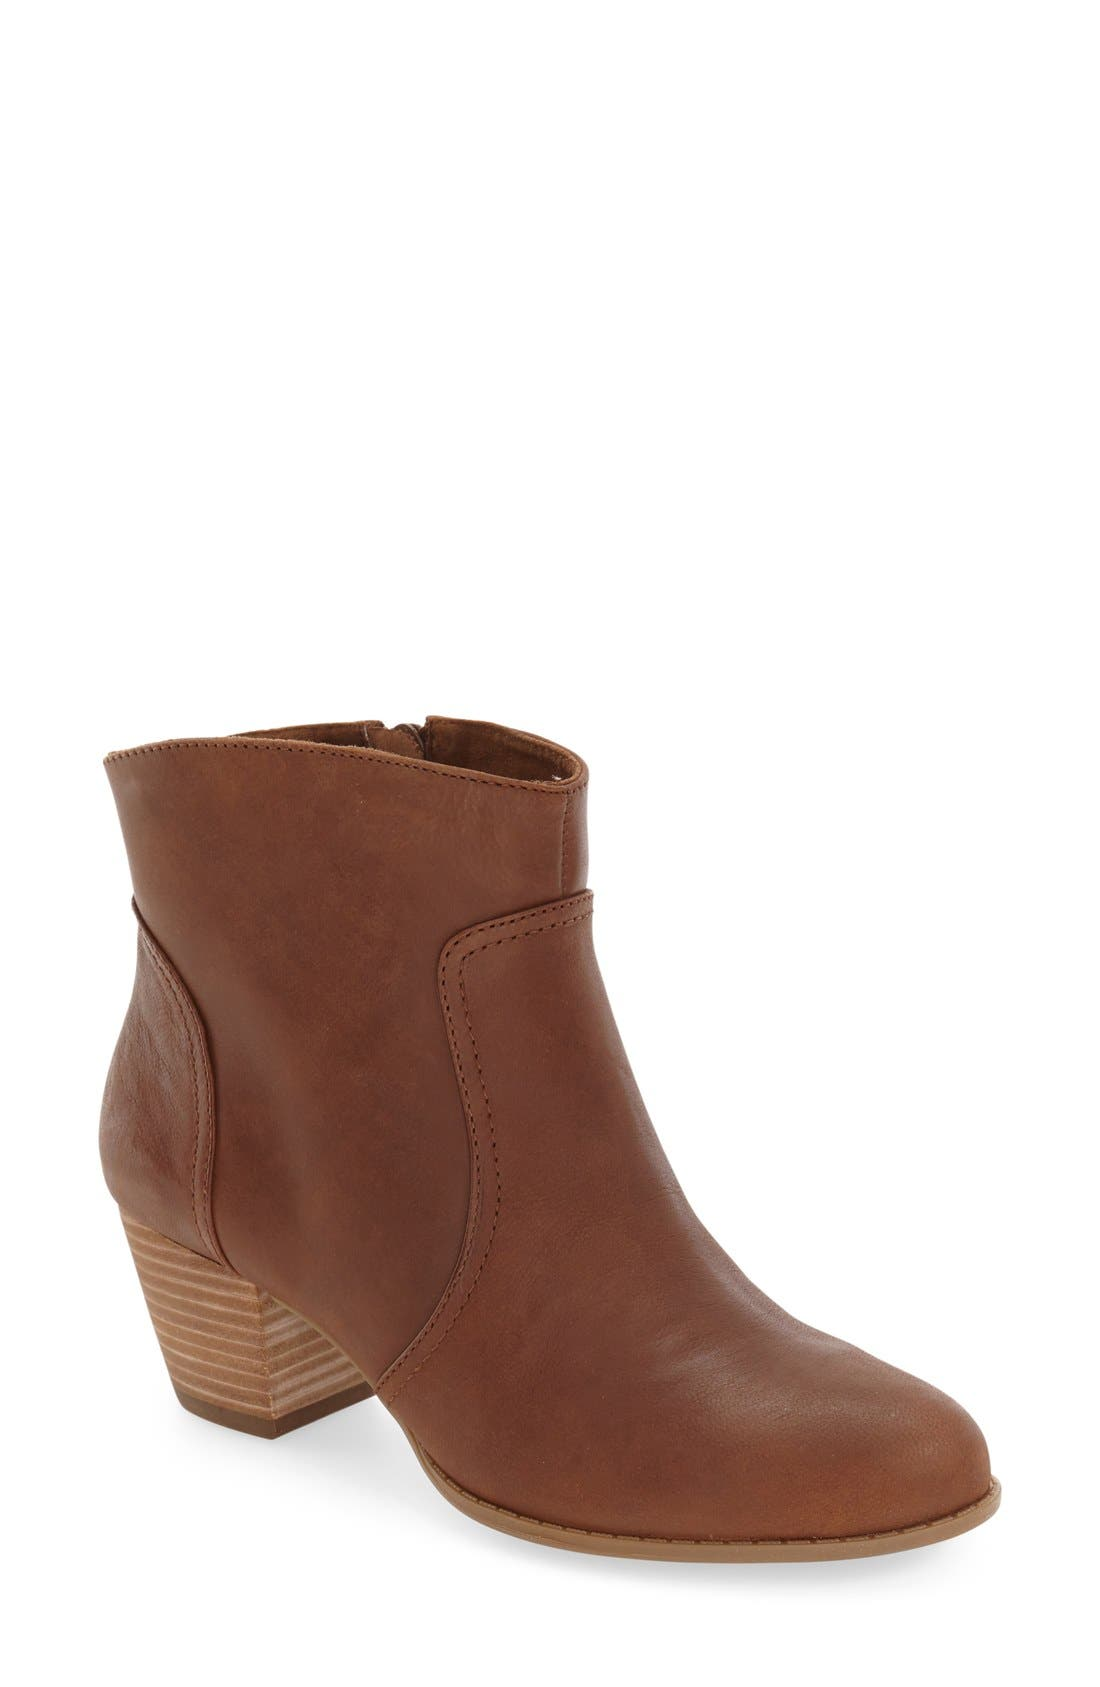 Alternate Image 1 Selected - Sole Society 'Romy' Bootie (Women)